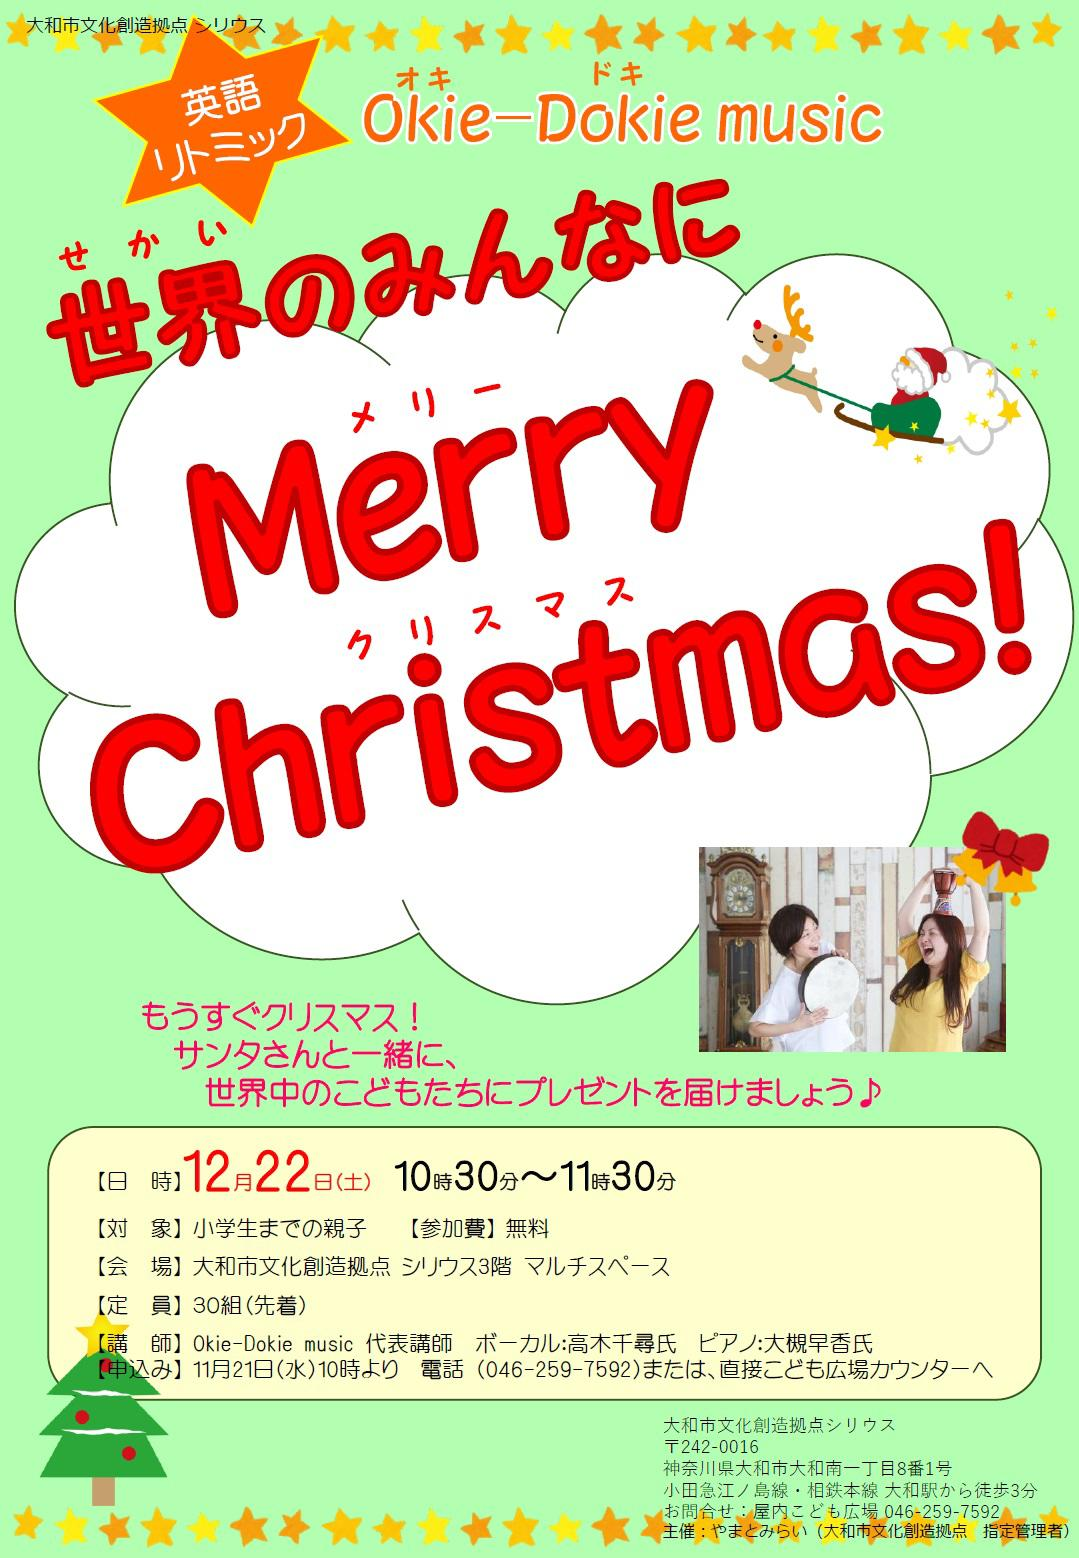 Okie-Dokie music 世界のみんなにMerry Christmas!